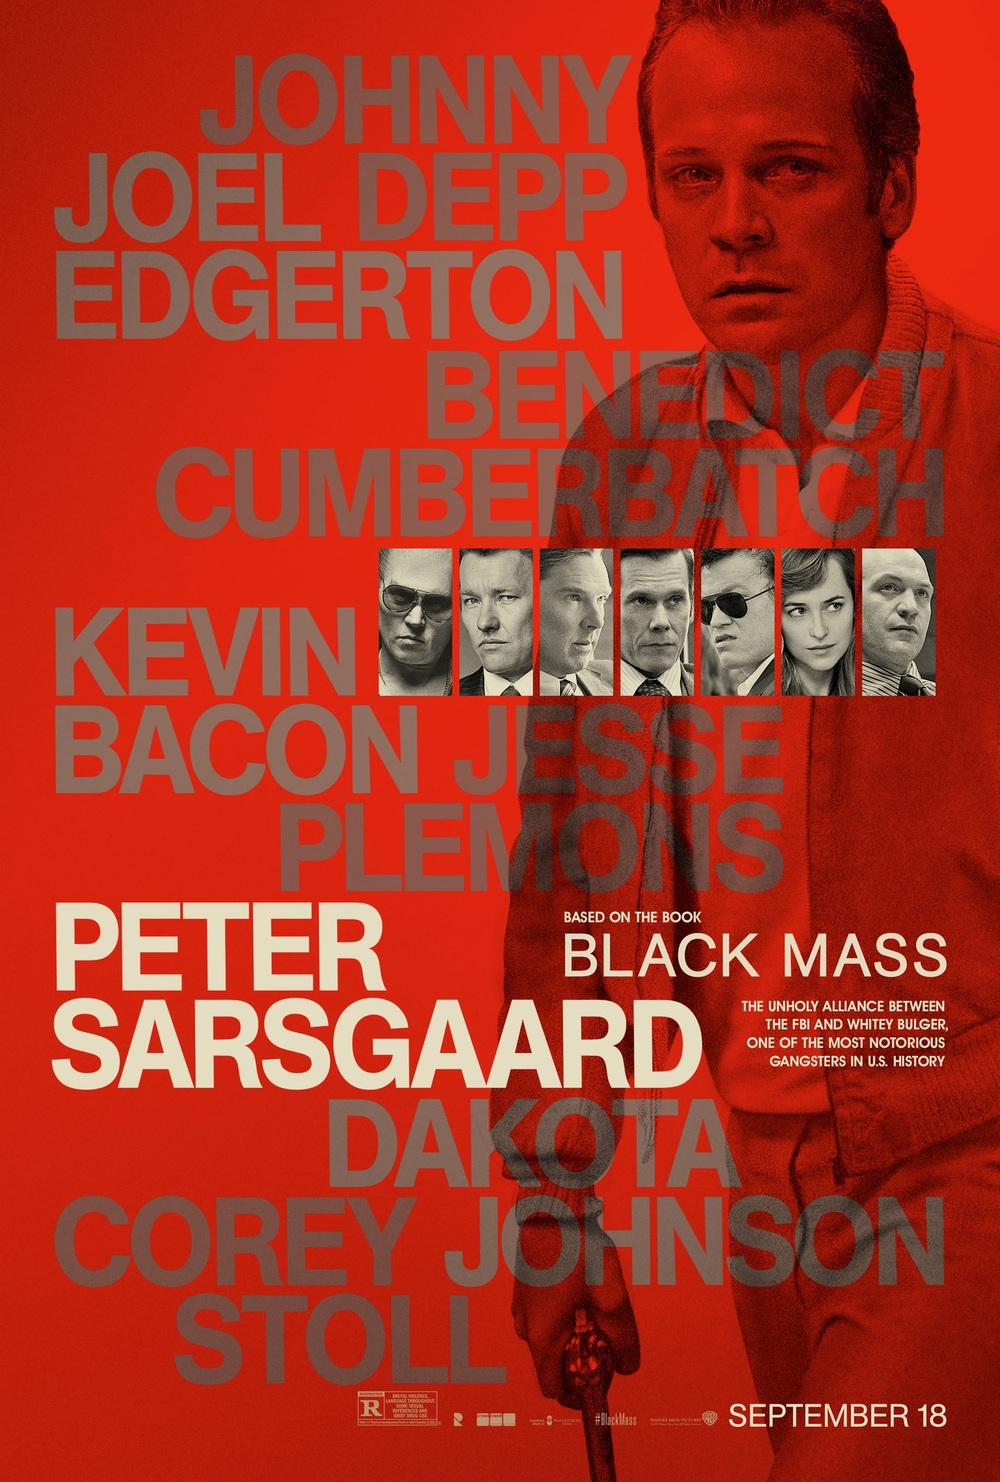 Black mass poster 9 Peter Sarsgaard